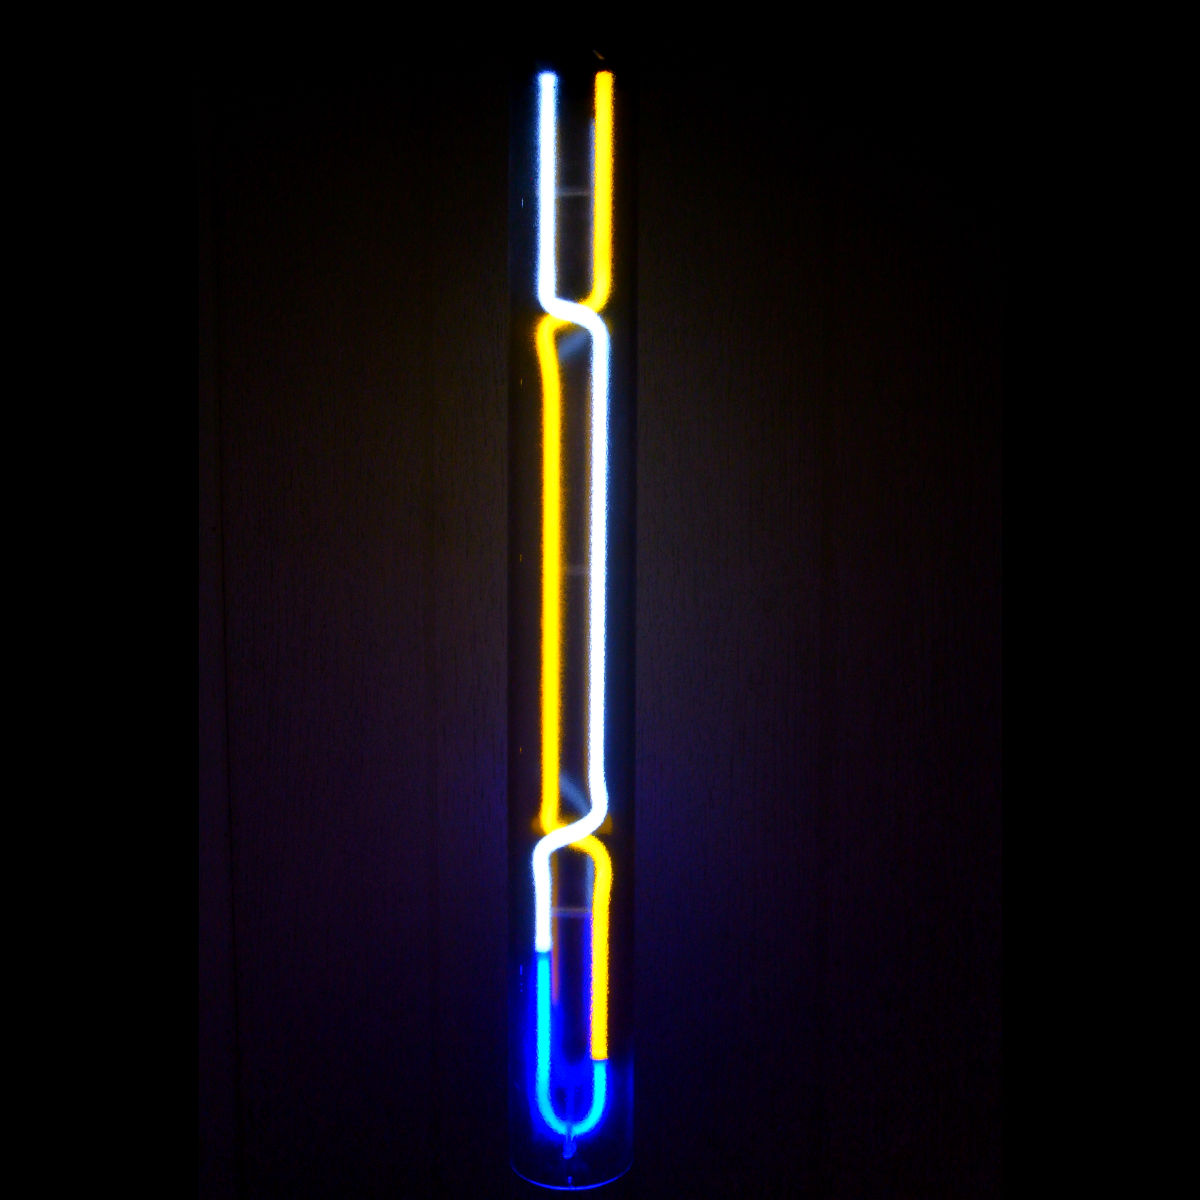 MOOD LIGHTING - DESIGNER NEON LIGHT CYLINDERS BY JOHN BARTON - BartonNeonMagic.com